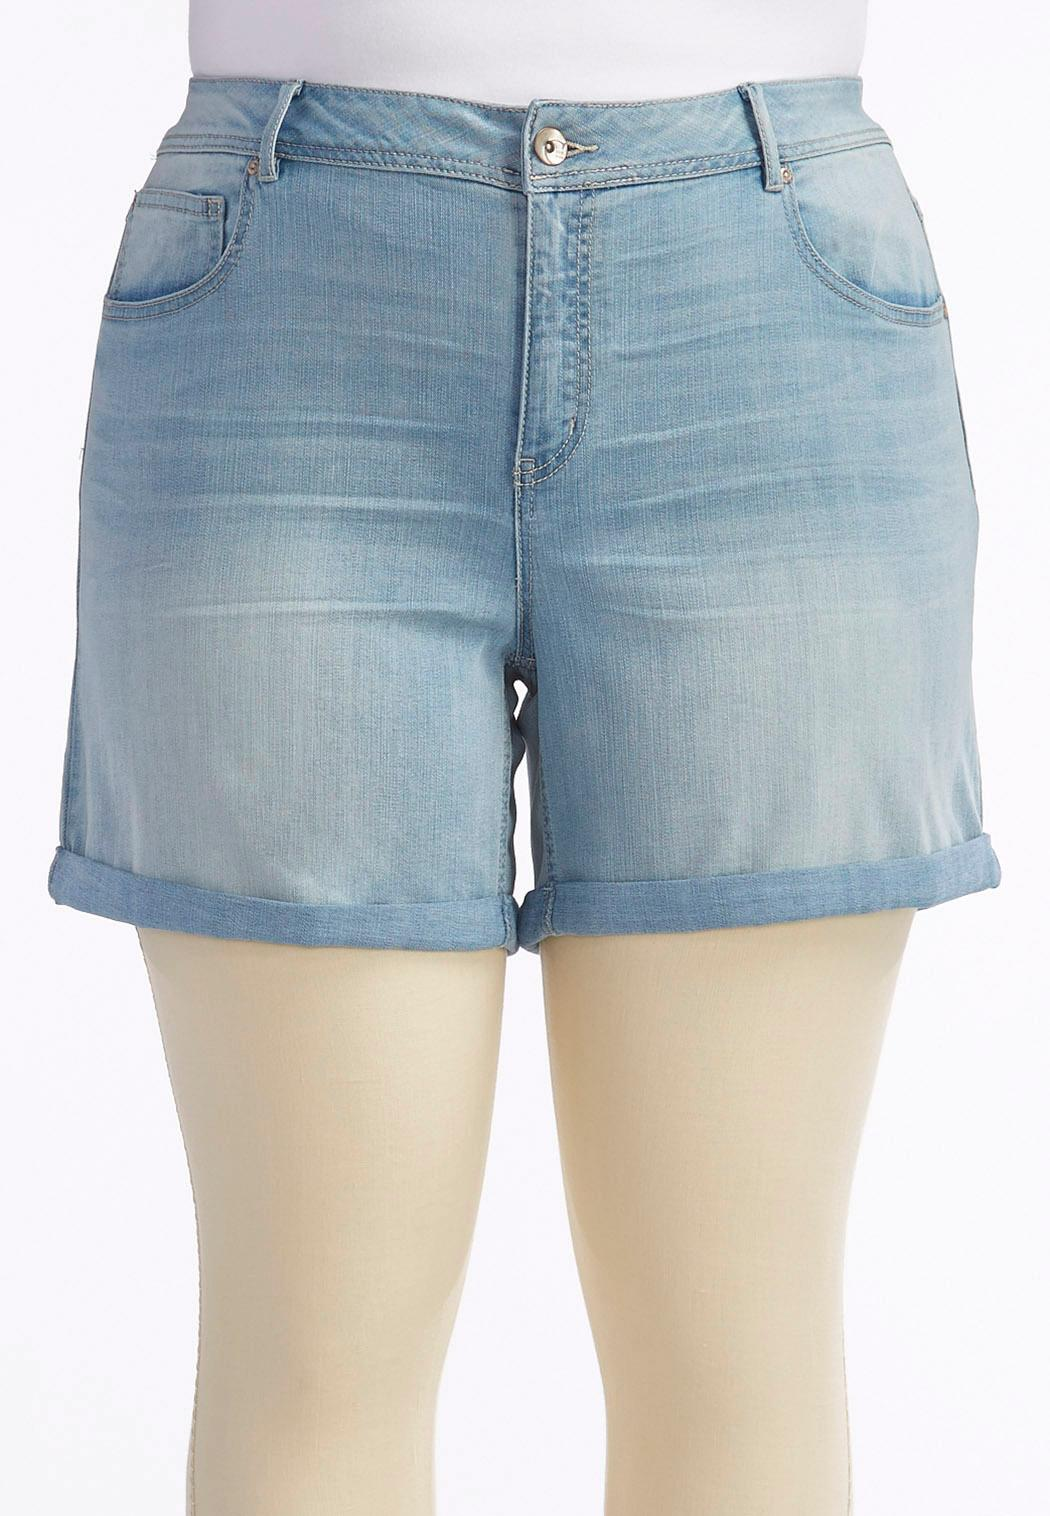 Cuffed Jean Shorts-Plus Shorts & Crops Cato Fashions